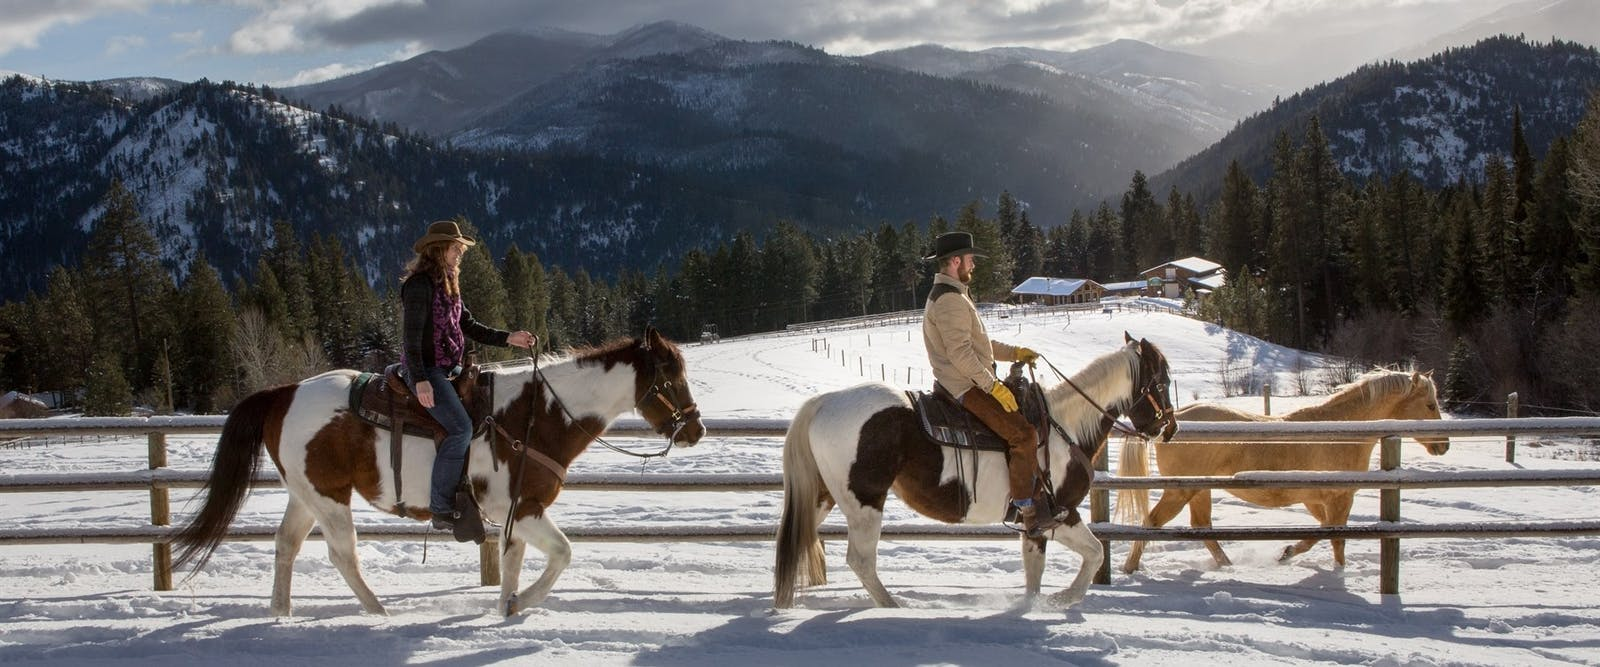 Horse riding In Snow At Triple Creek Ranch